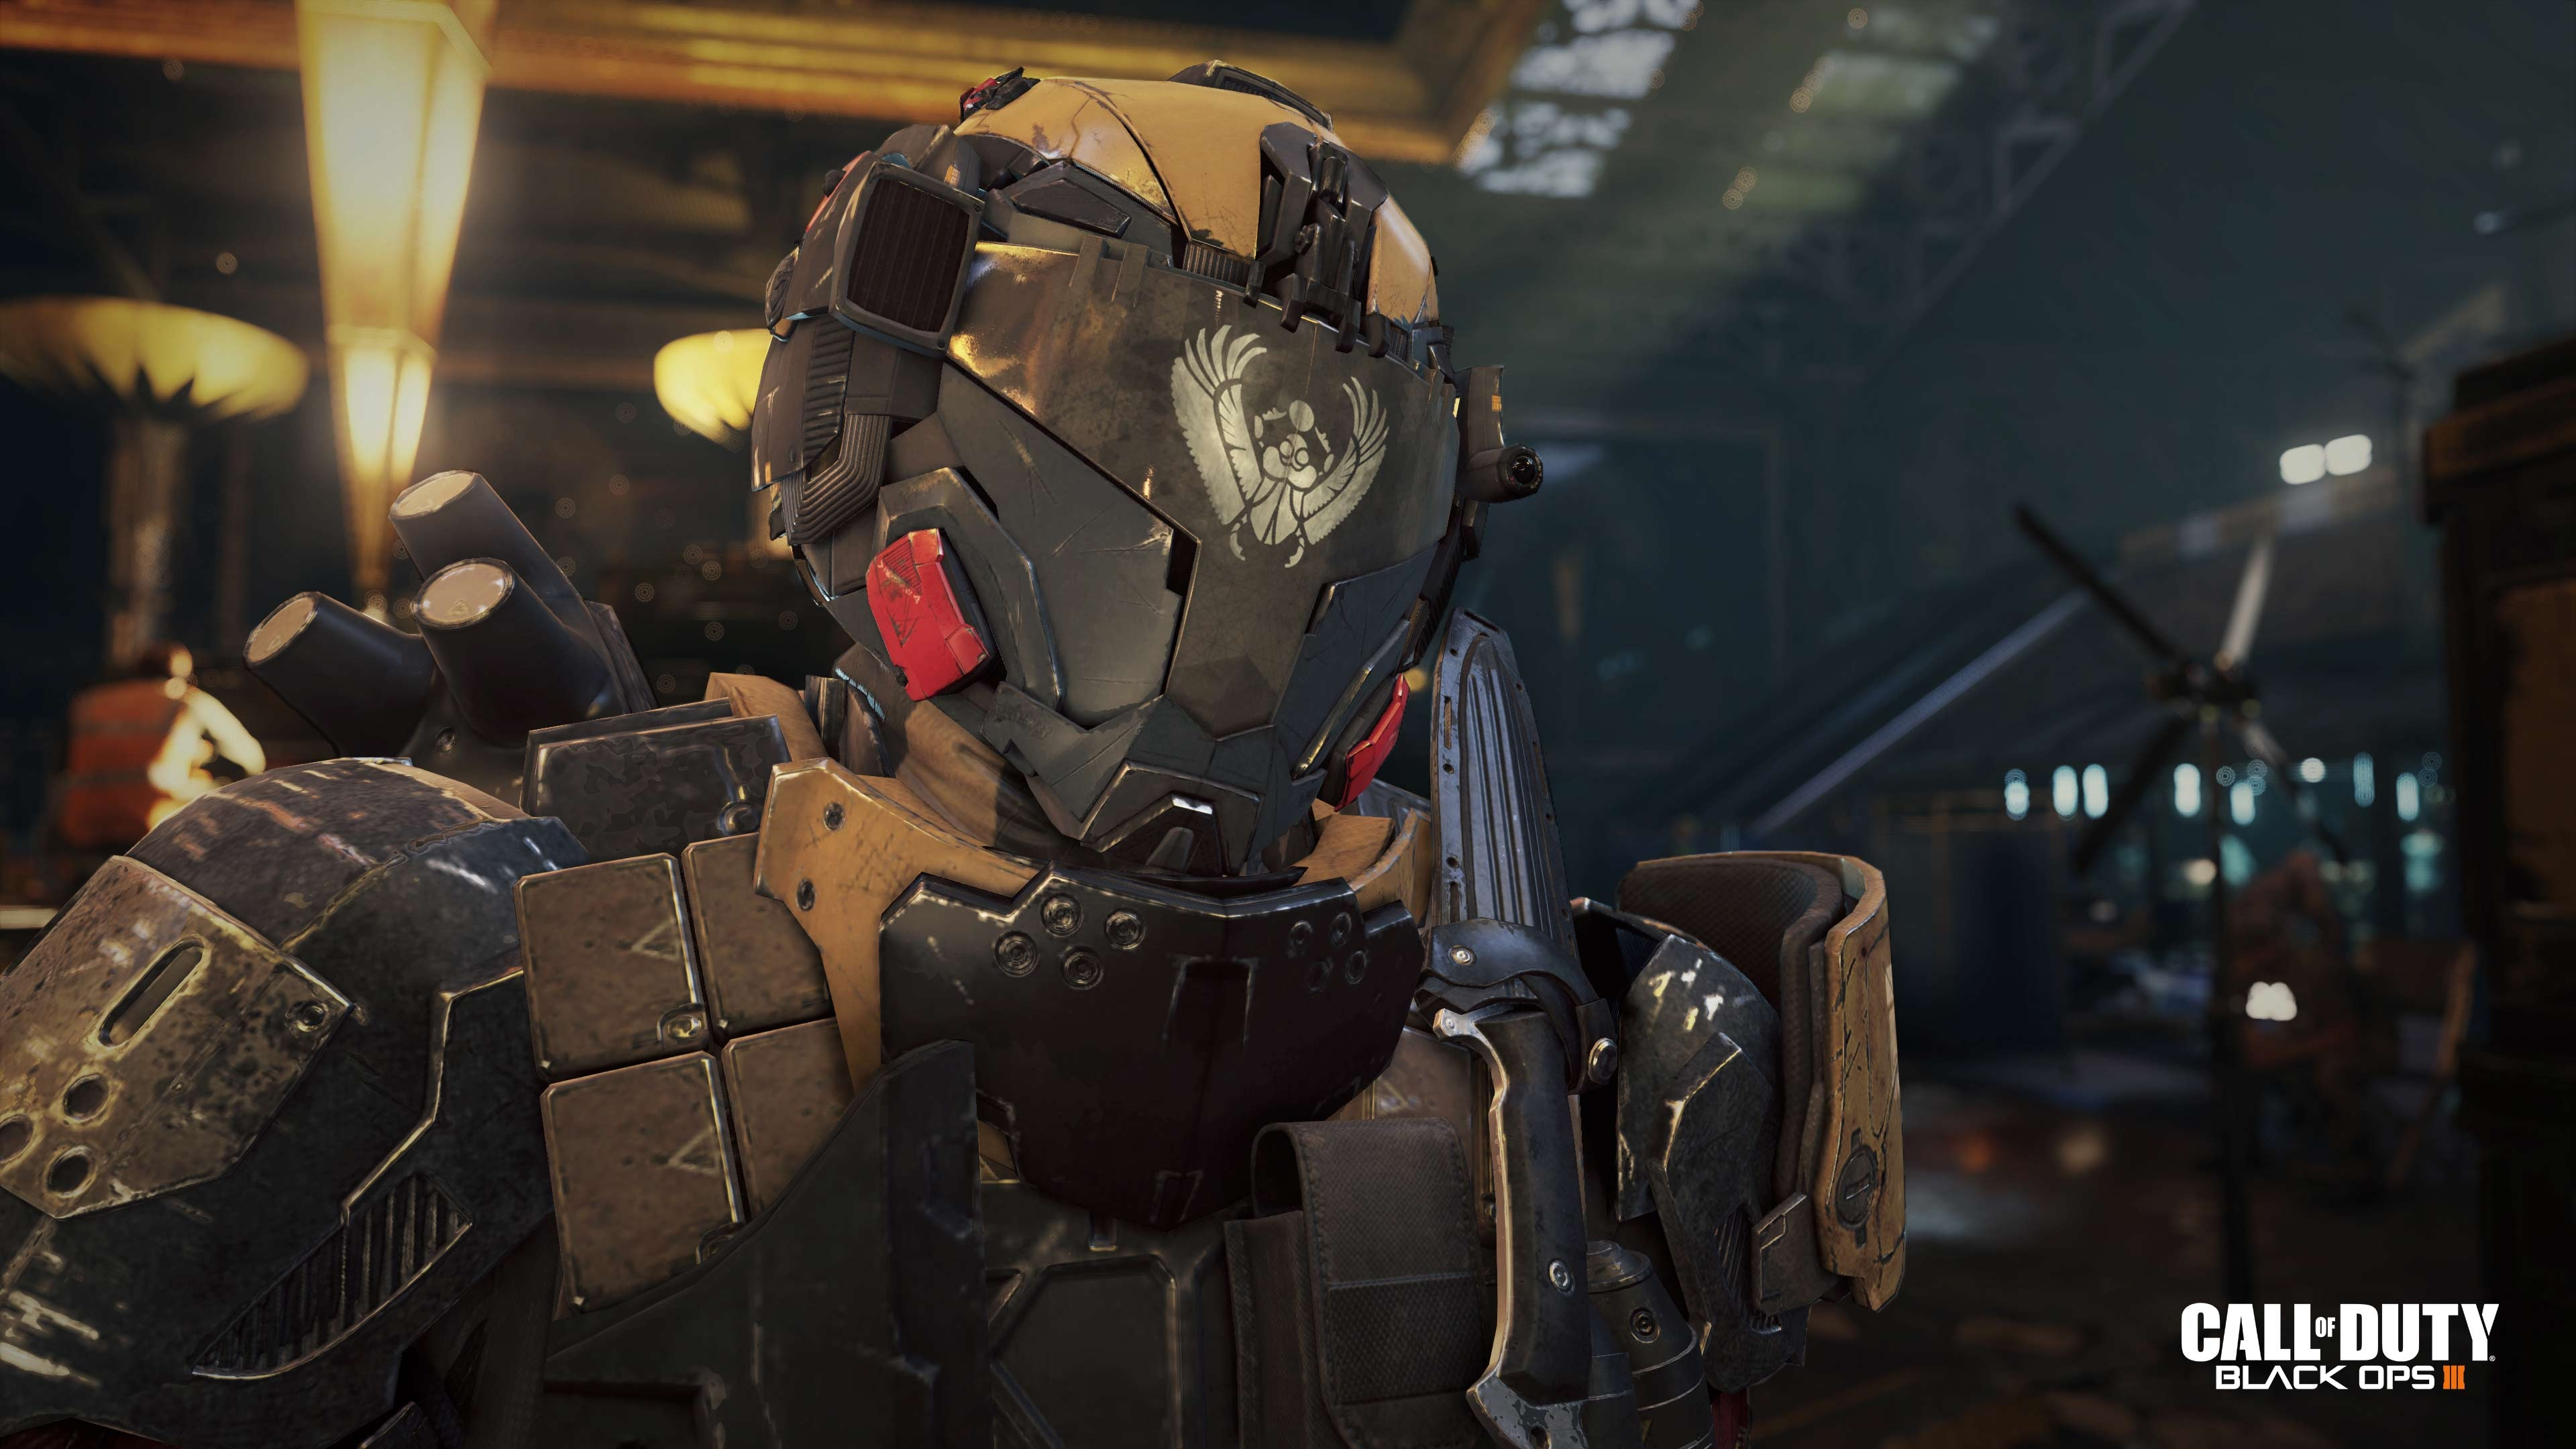 Call of Duty Black Ops 32